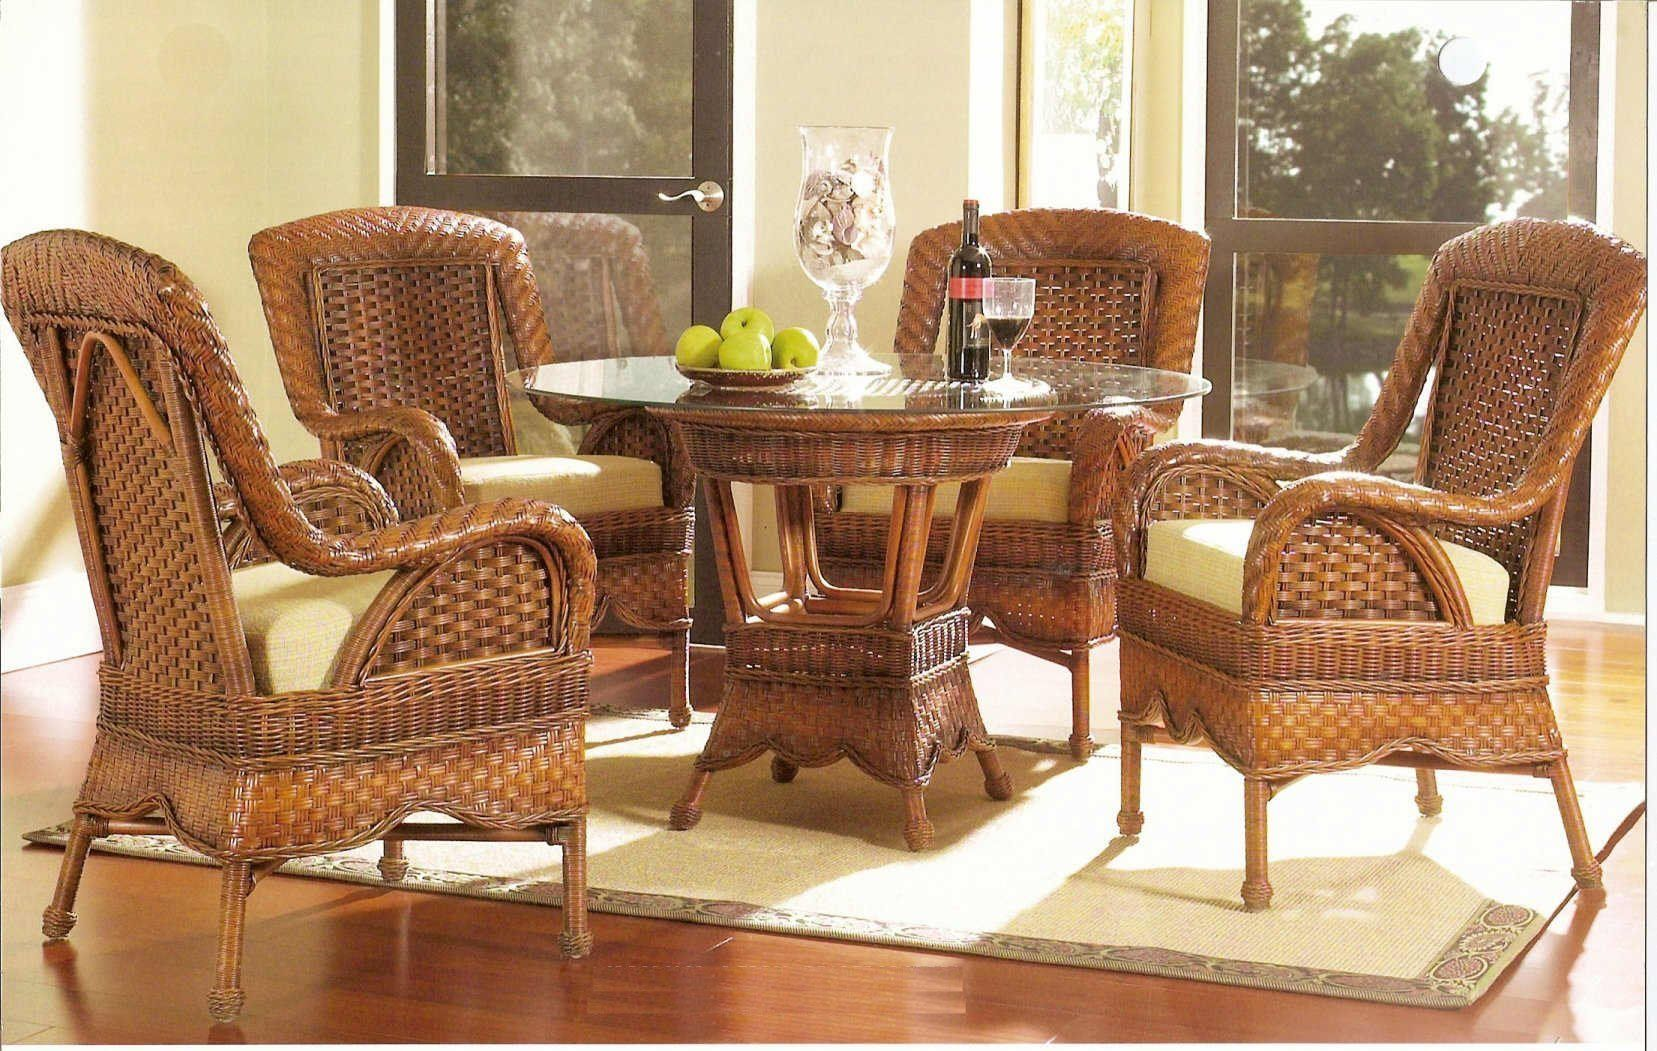 Cane Furniture Design 41825 - housejpg.com | BAMBOO, WICKER ...